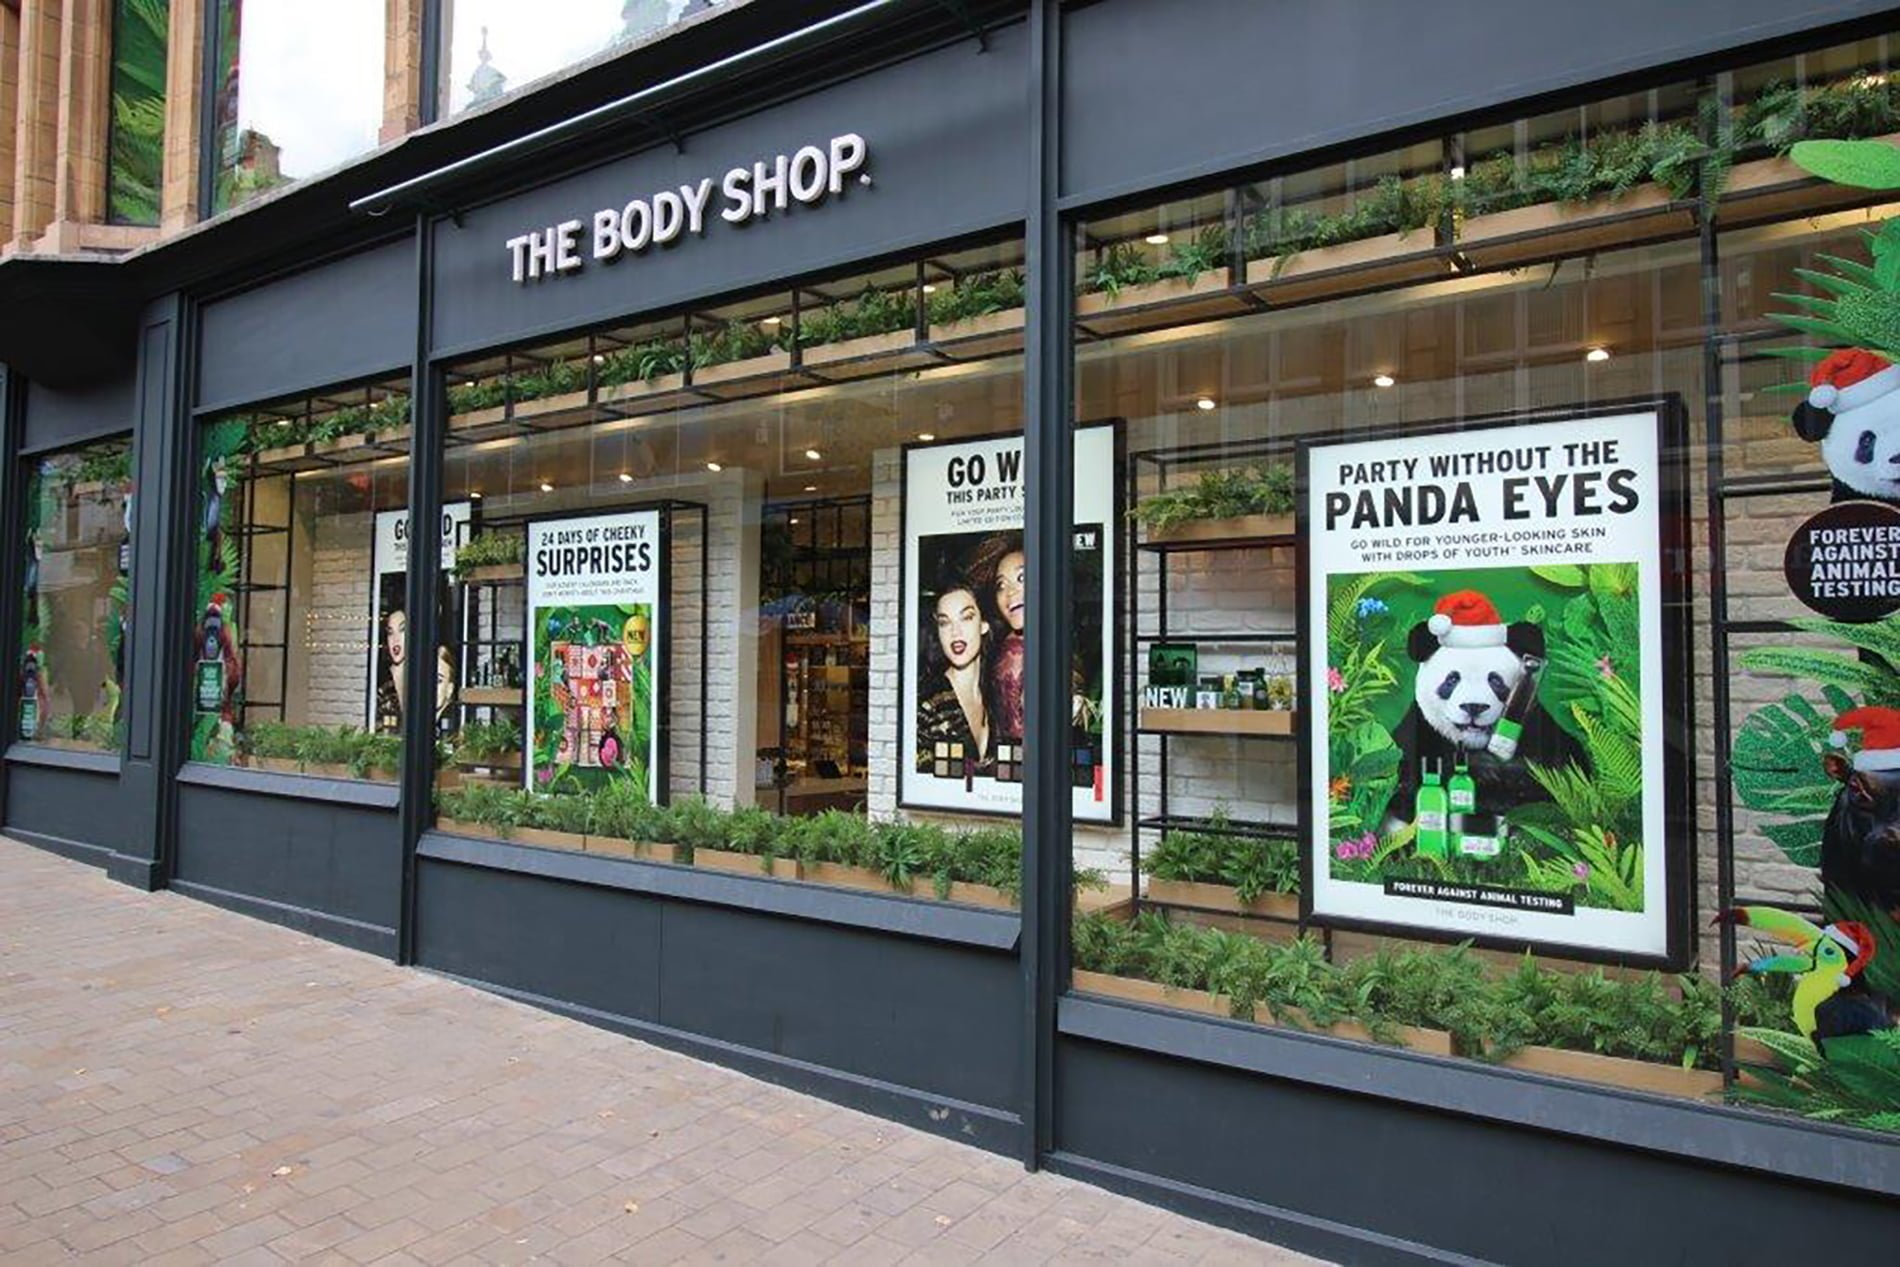 exterior of the body shop store with 'party without the panda eyes' window display